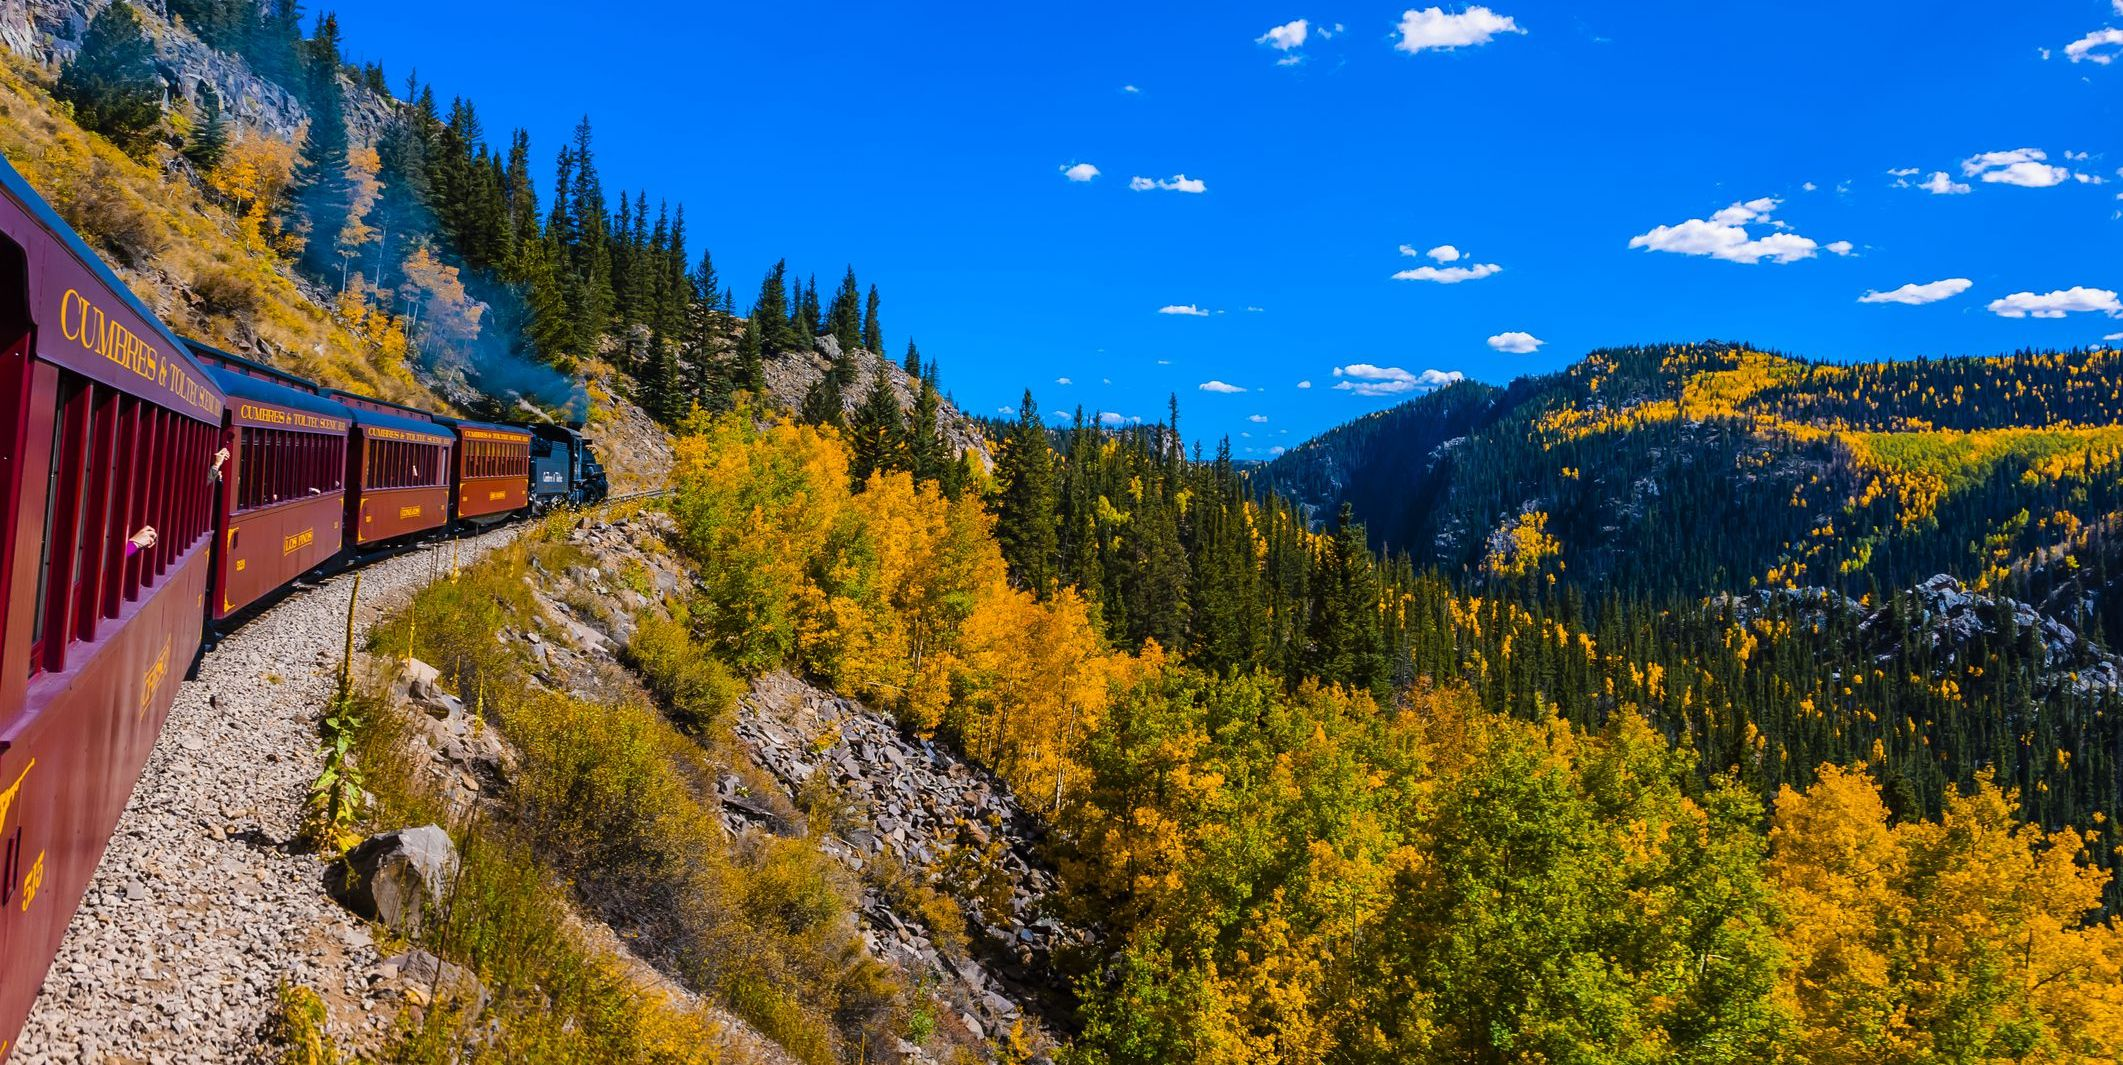 fall foliage train rides - fall leaf peeping train tours